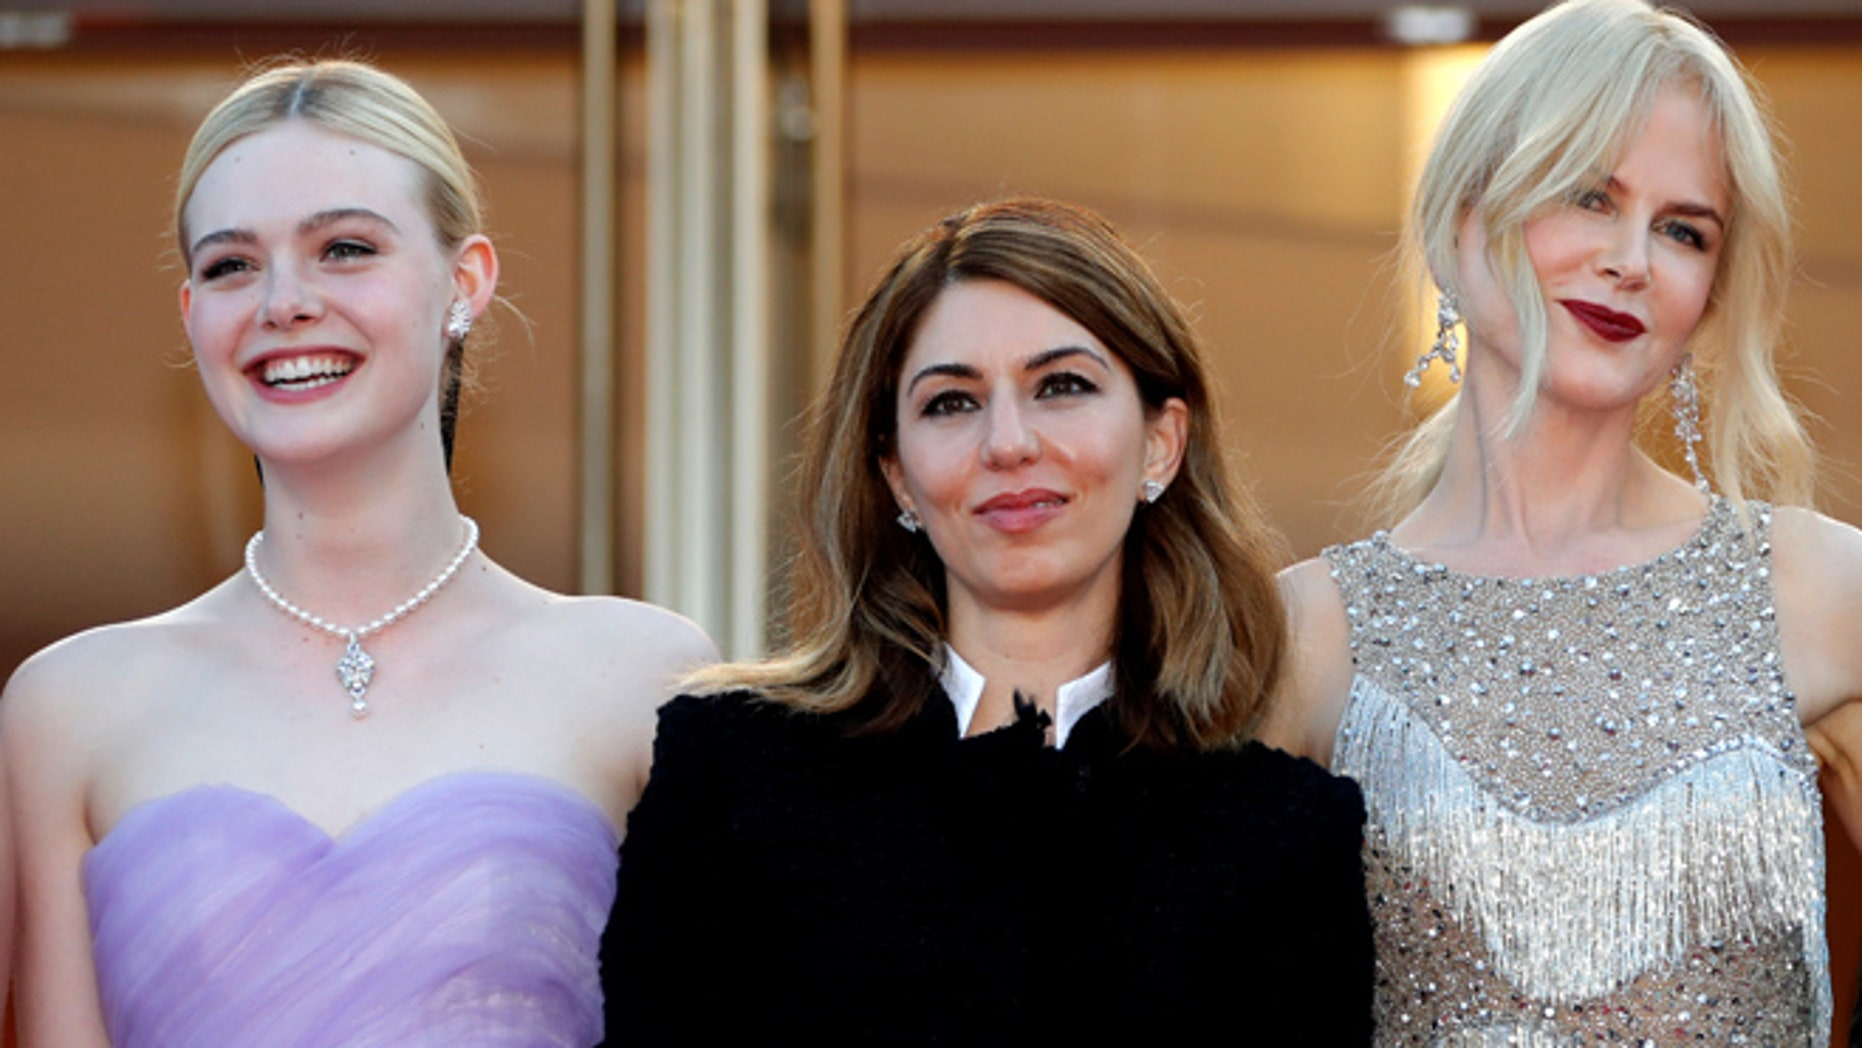 Sofia Coppola (center) with Elle Fanning and Nicole Kidman became only the second woman to win best director at the Cannes Film Festival.